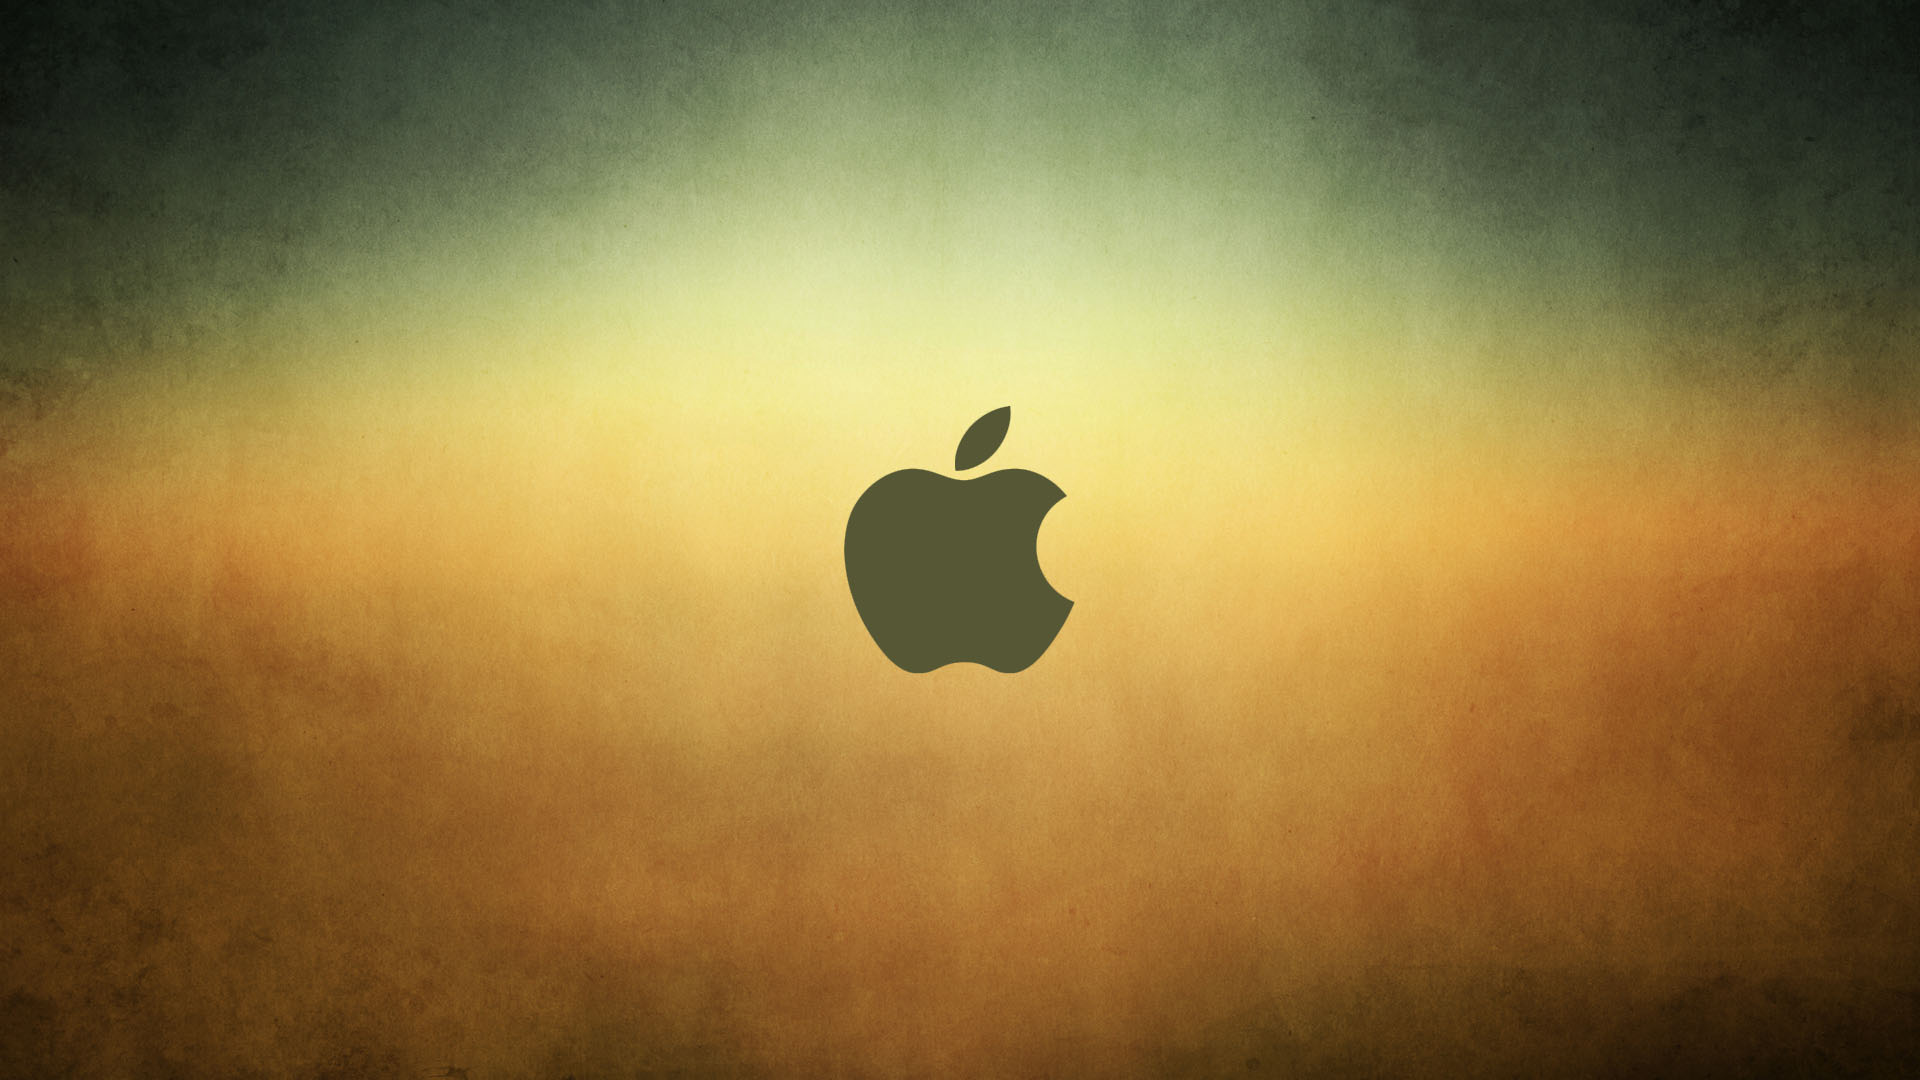 Apple HD Wallpapers  Backgrounds  Wallpaper  1920x1080